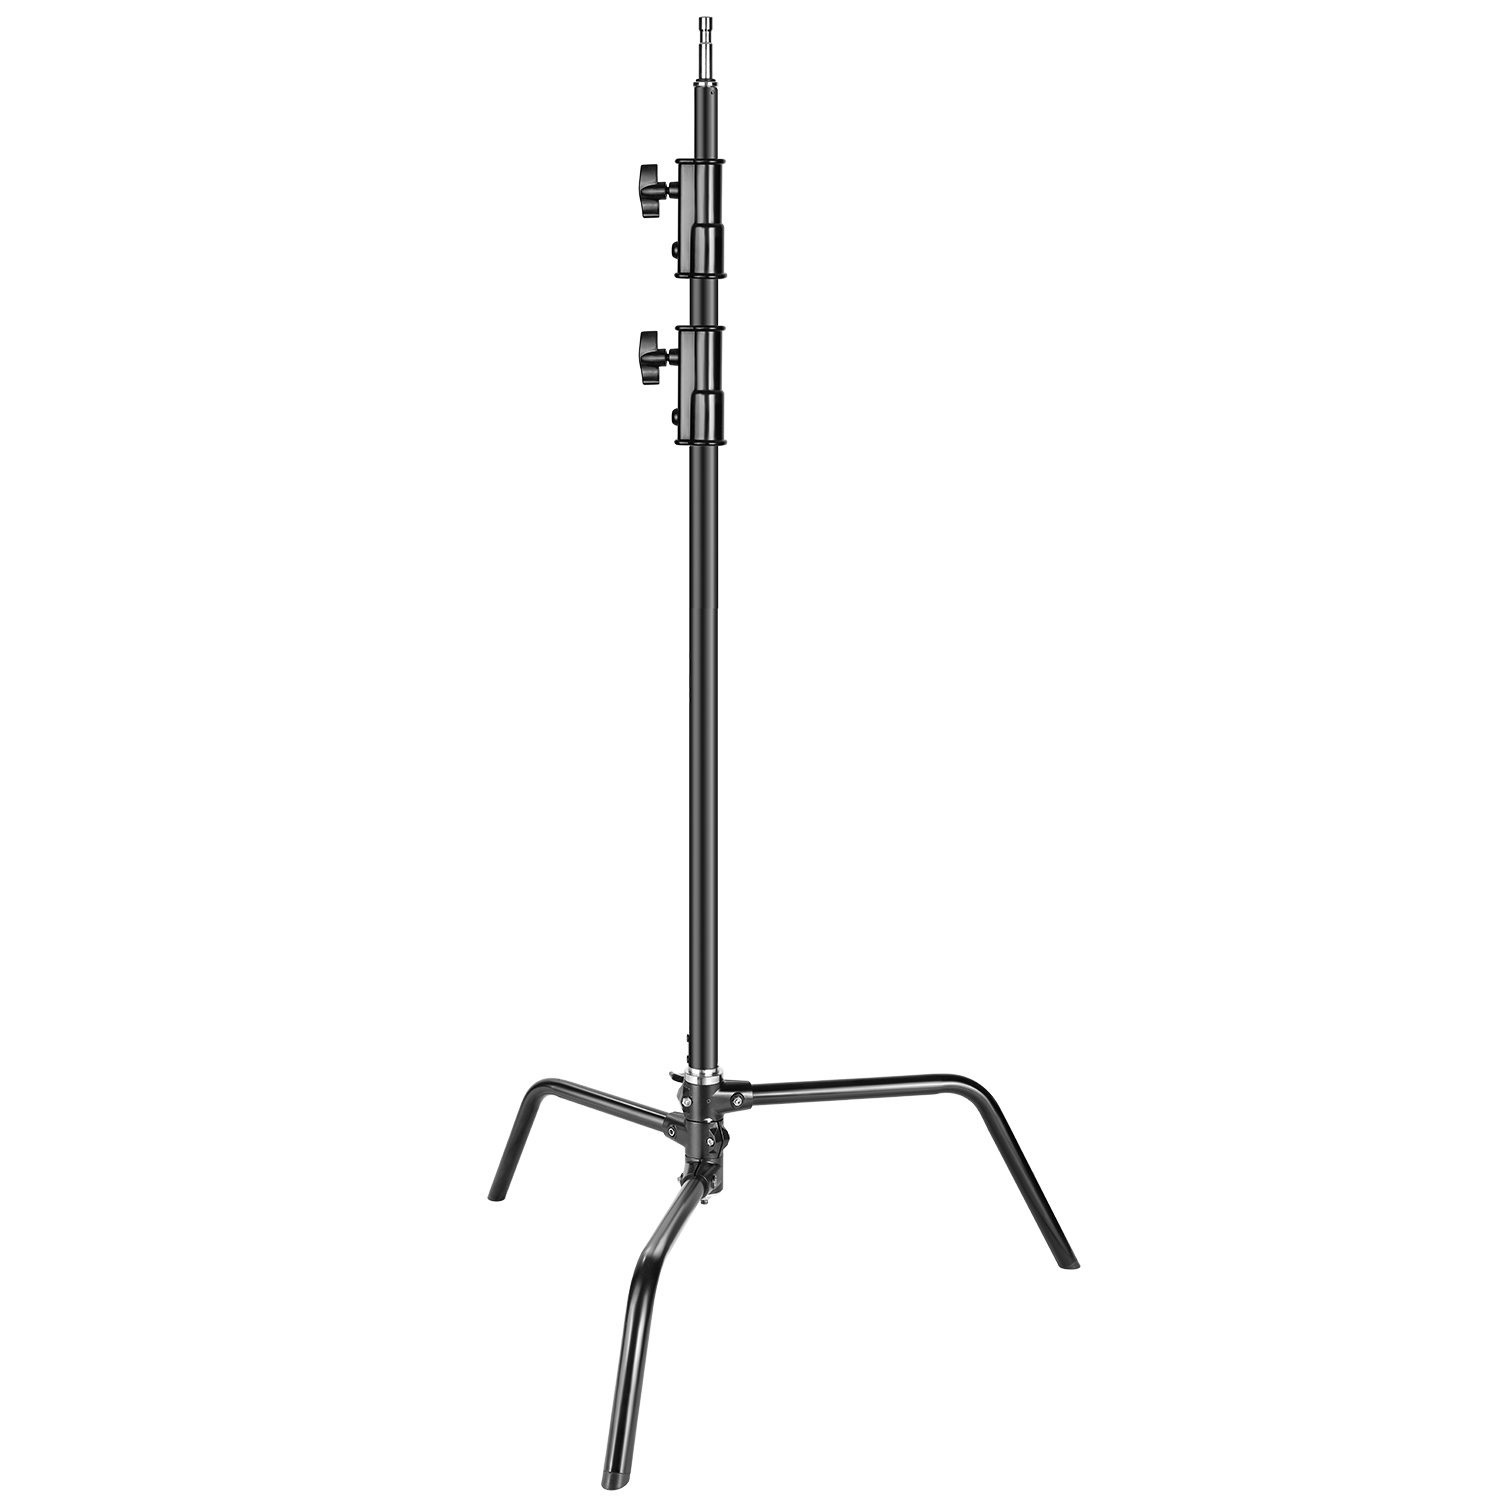 Neewer Heavy Duty Light Stand With Detachable Base 5 10 Feet 1 6 3 2 Meters Adjustable C Stand With 2 Risers For Studio Photography Location Shooting Aluminum Alloy Max Load Capacity 22 Pounds Walmart Com Walmart Com 1 meter is equal to 3.28084 feet: walmart